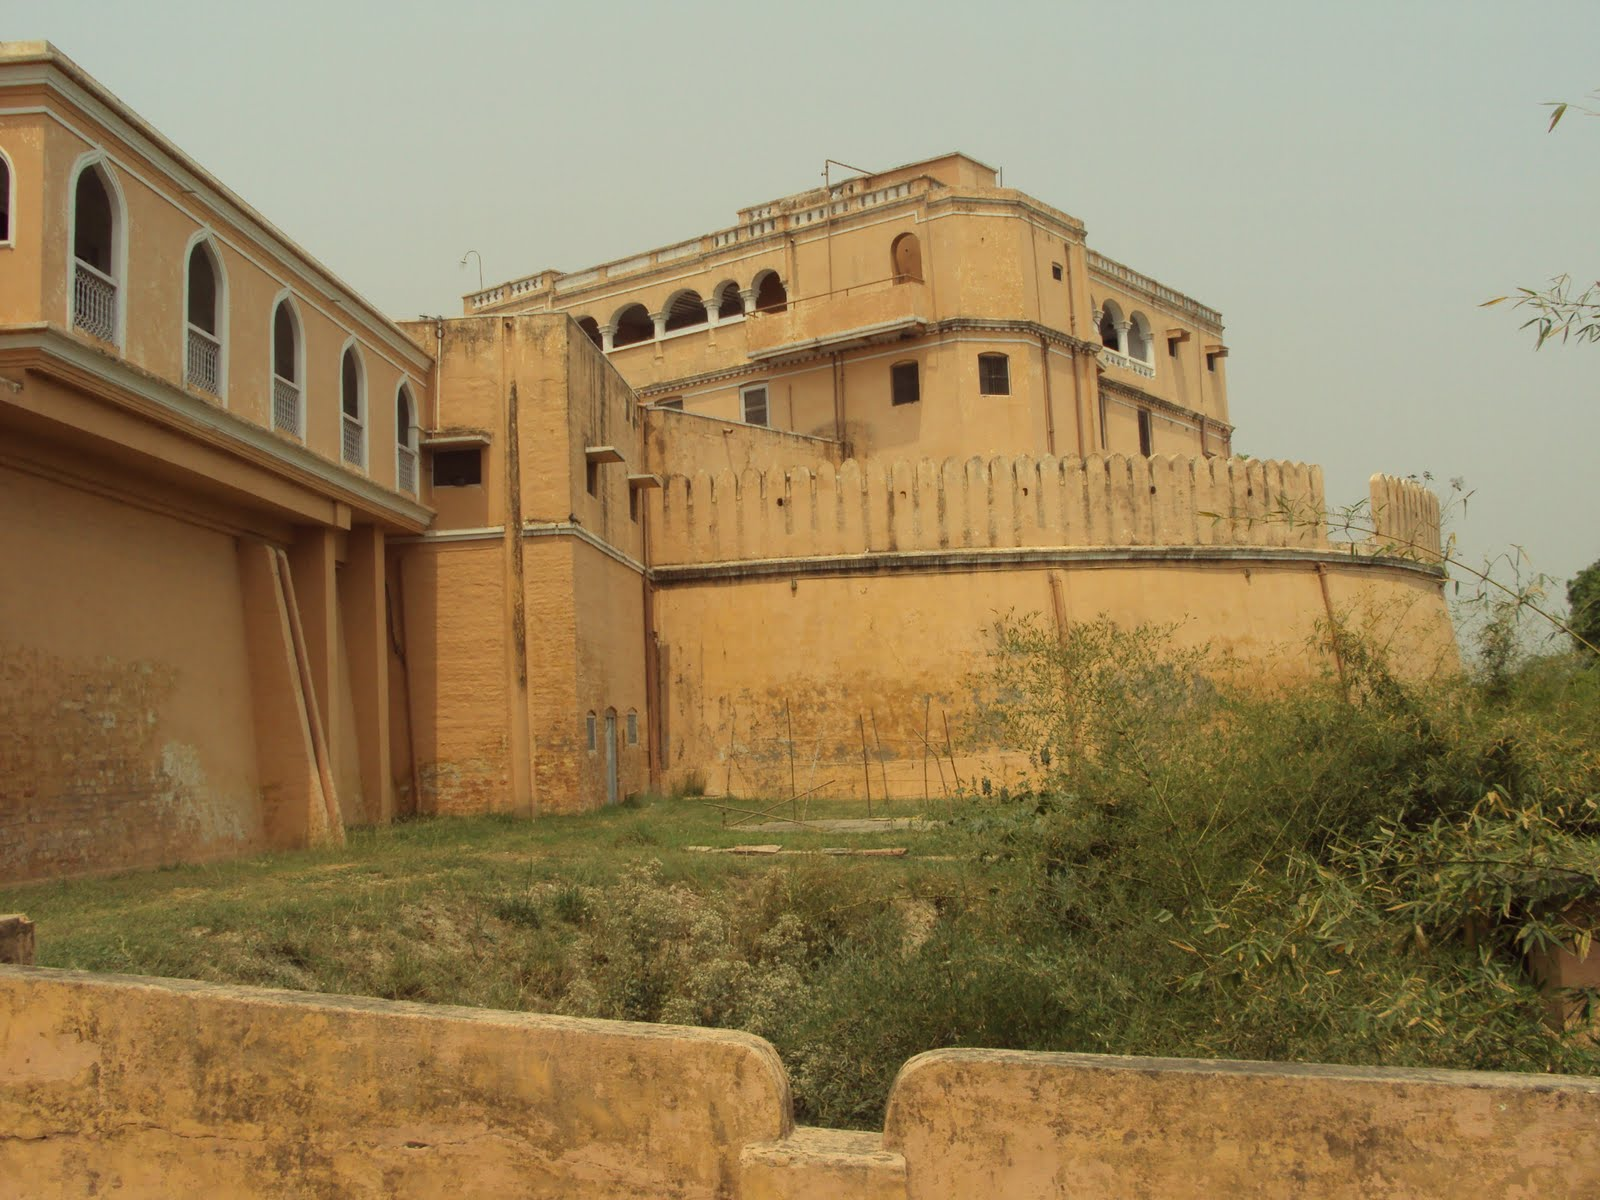 Kuchesar India  city pictures gallery : Places to Visit near Delhi | India Travel Guide